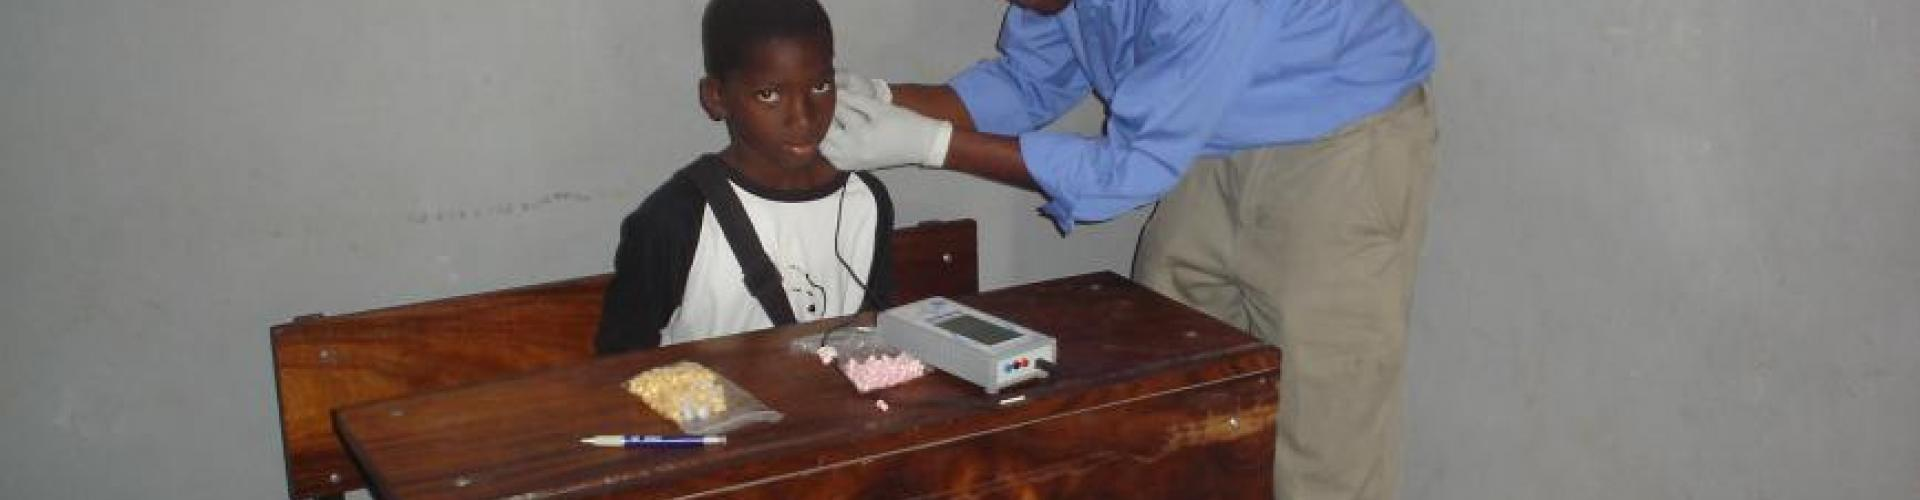 Hearing Screening in Maxixe Primary School,Mozambique